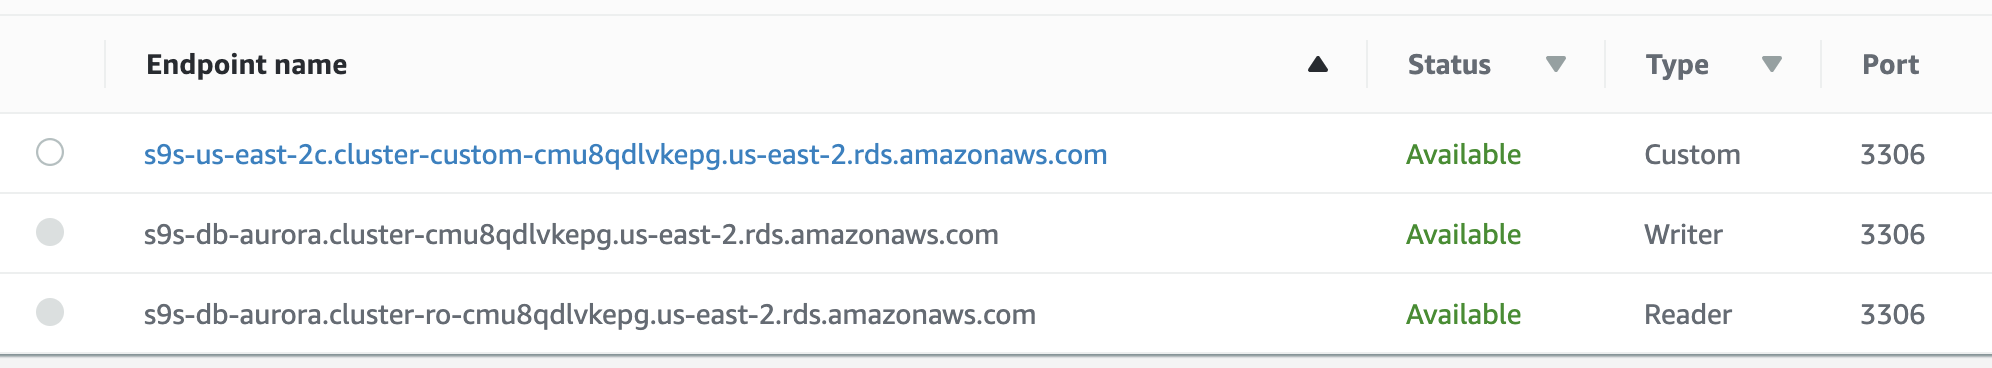 Amazon RDS Endpoint Name